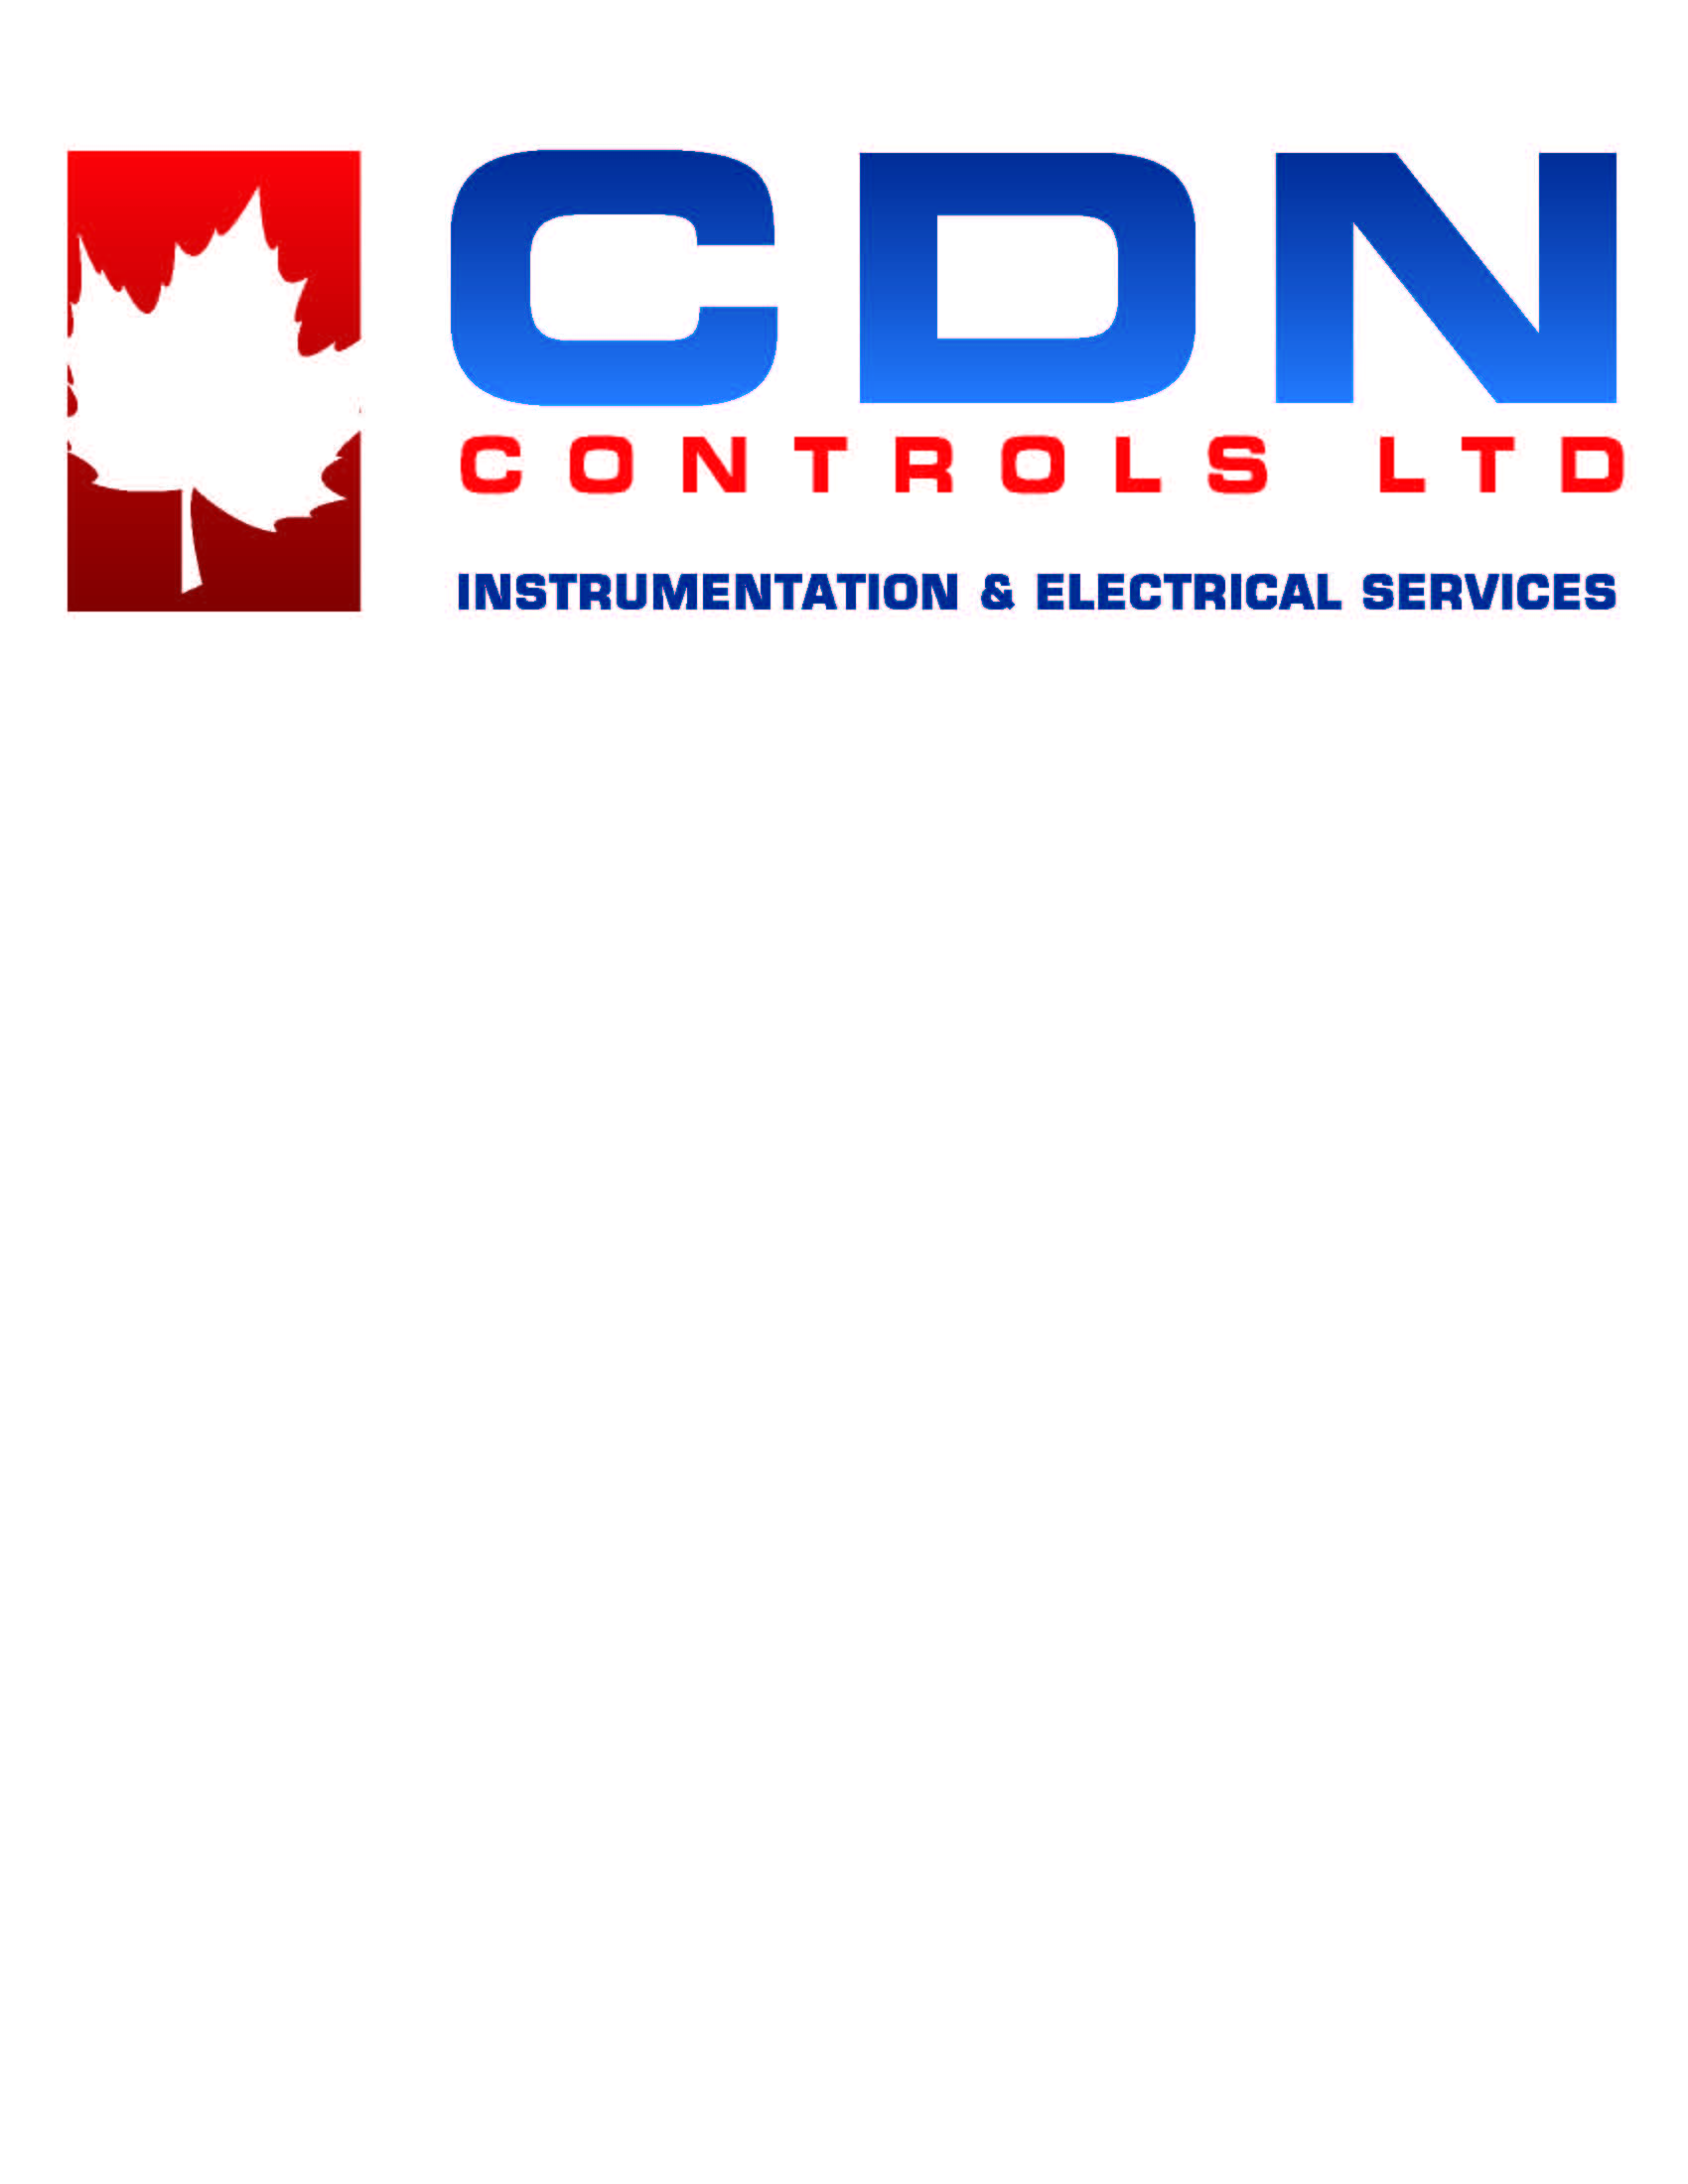 CDN Controls Ltd.